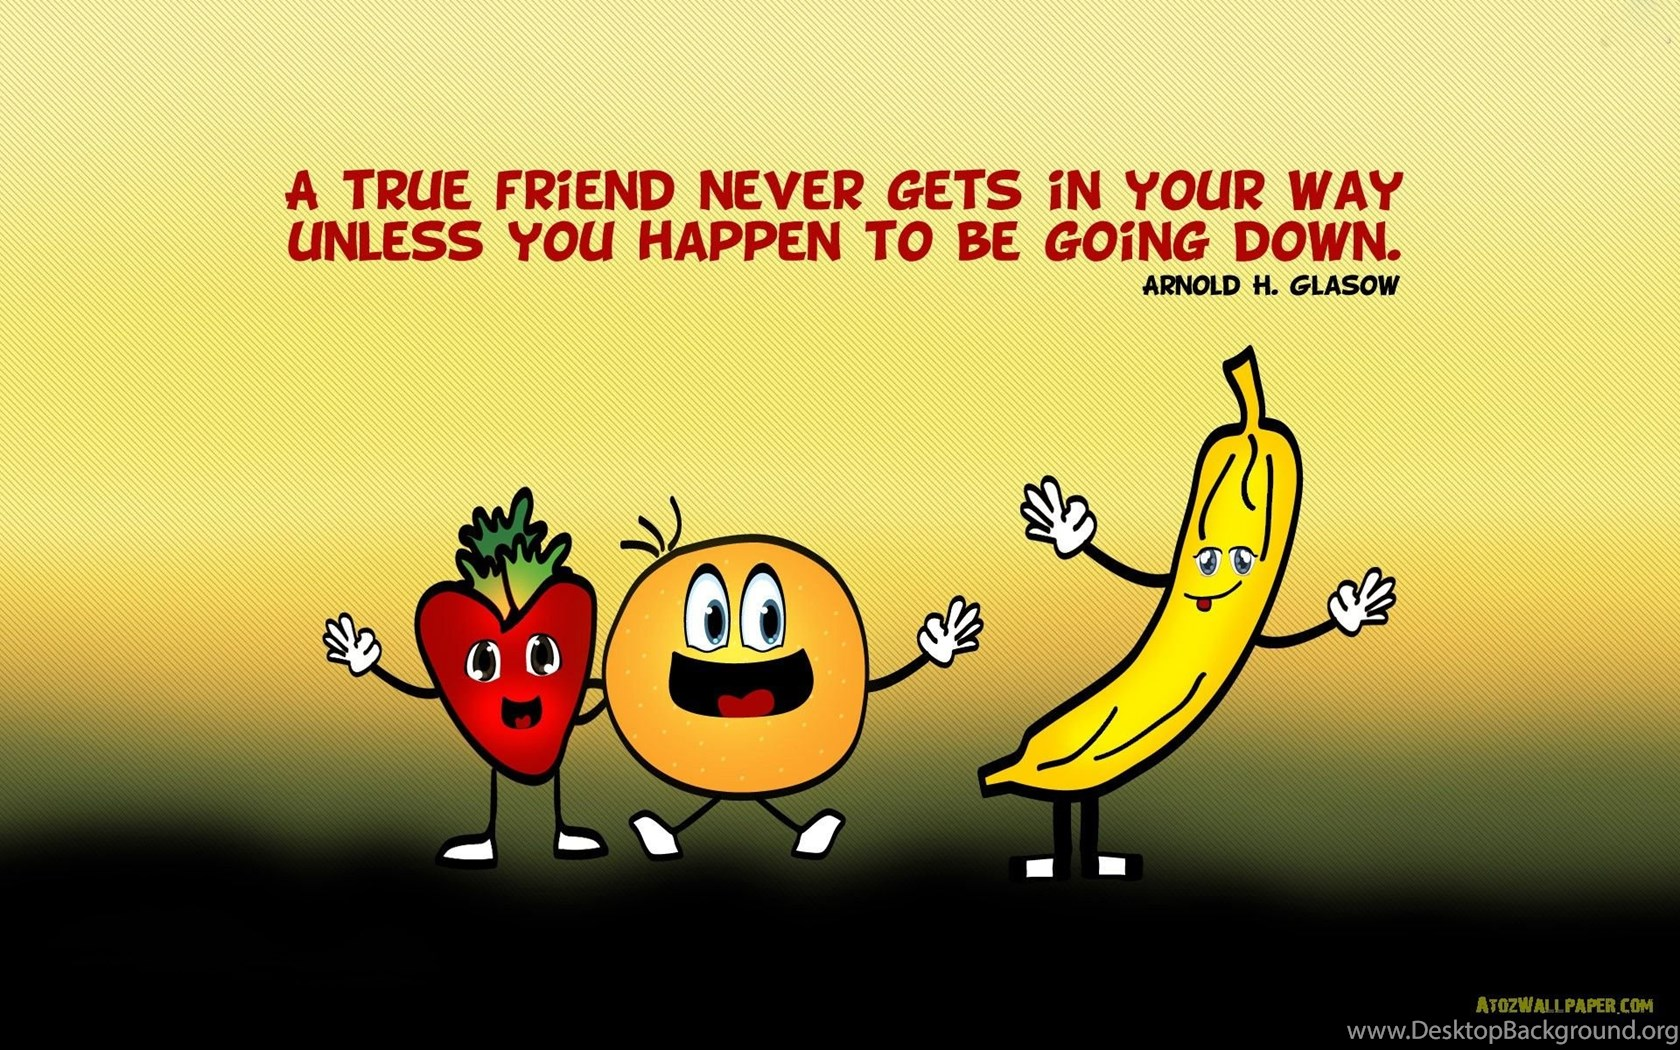 Friendship Quotes Hd Wallpapers Desktop Background